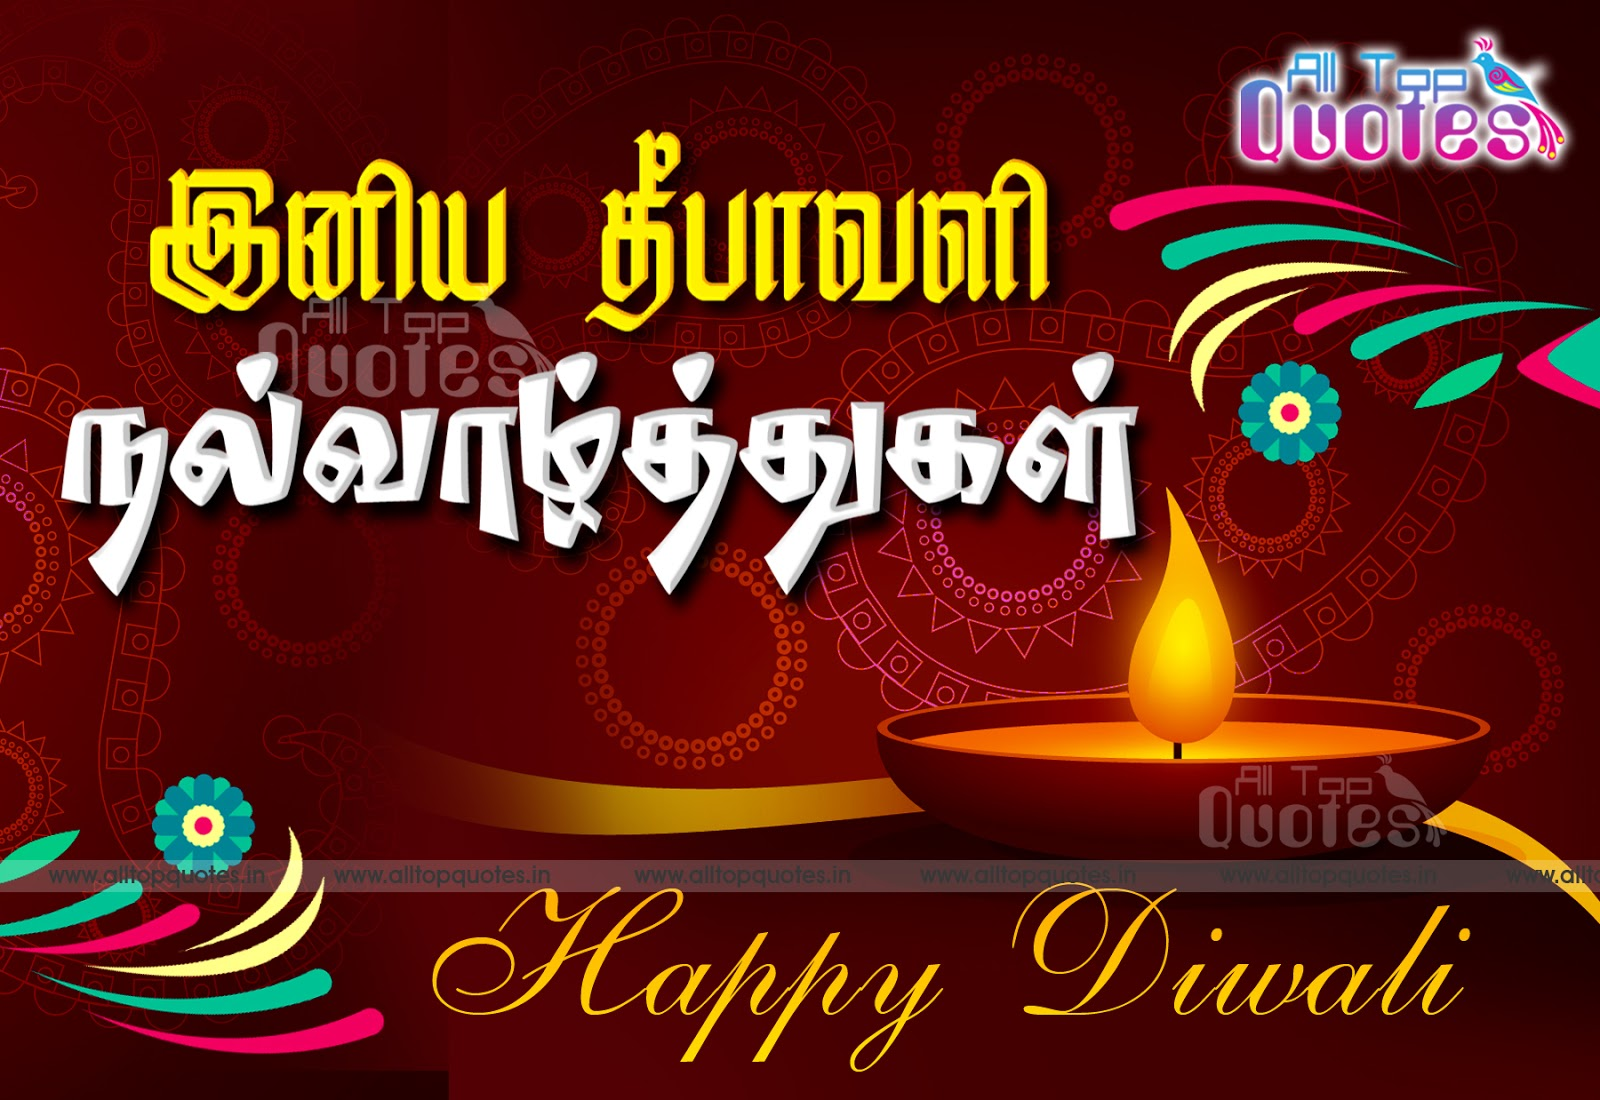 List of synonyms and antonyms of the word happy deepavali to all happy diwali 2012 wishing you all a very happy prosperous m4hsunfo